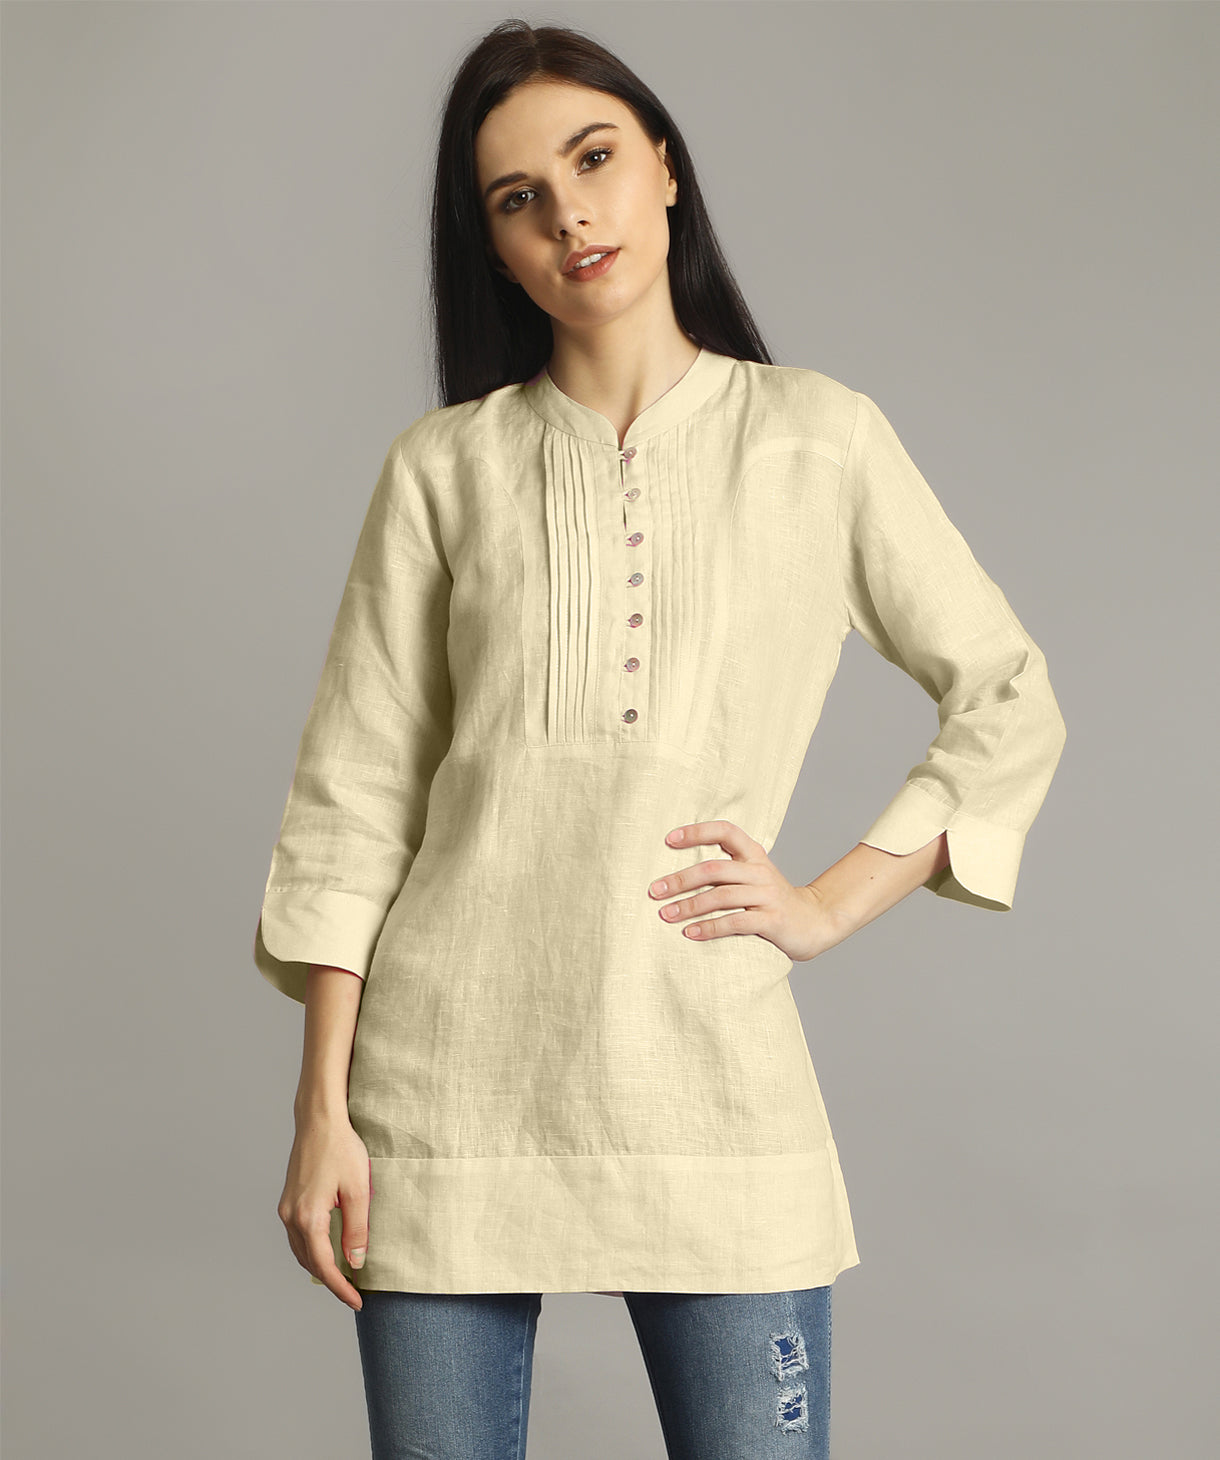 Uptownie Plus Off White Mandarin Pleated Neck Tunic. FLAT 200 OFF